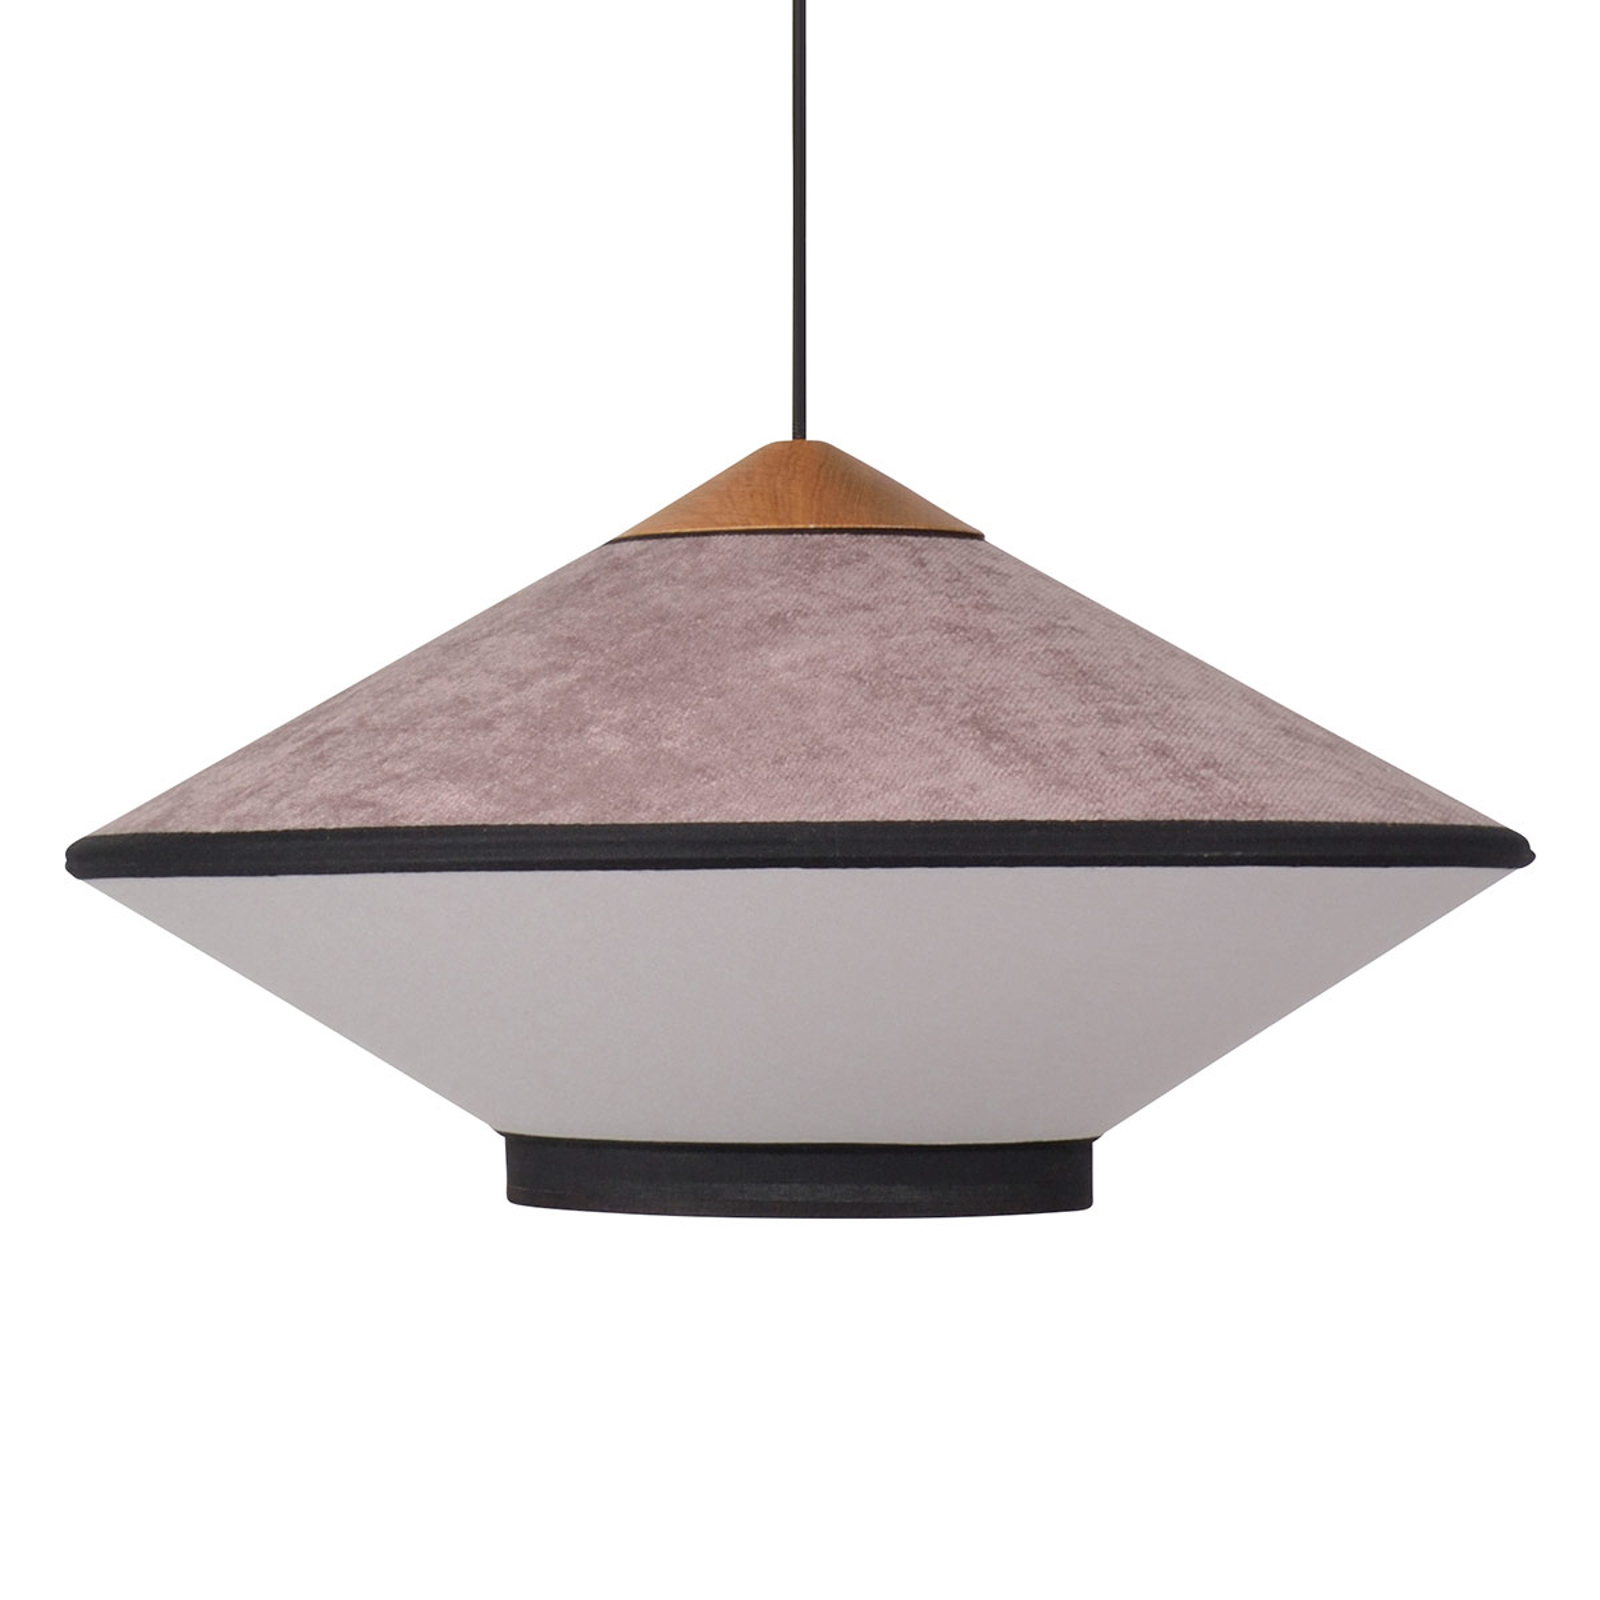 Forestier Cymbal S suspension 50 cm rose